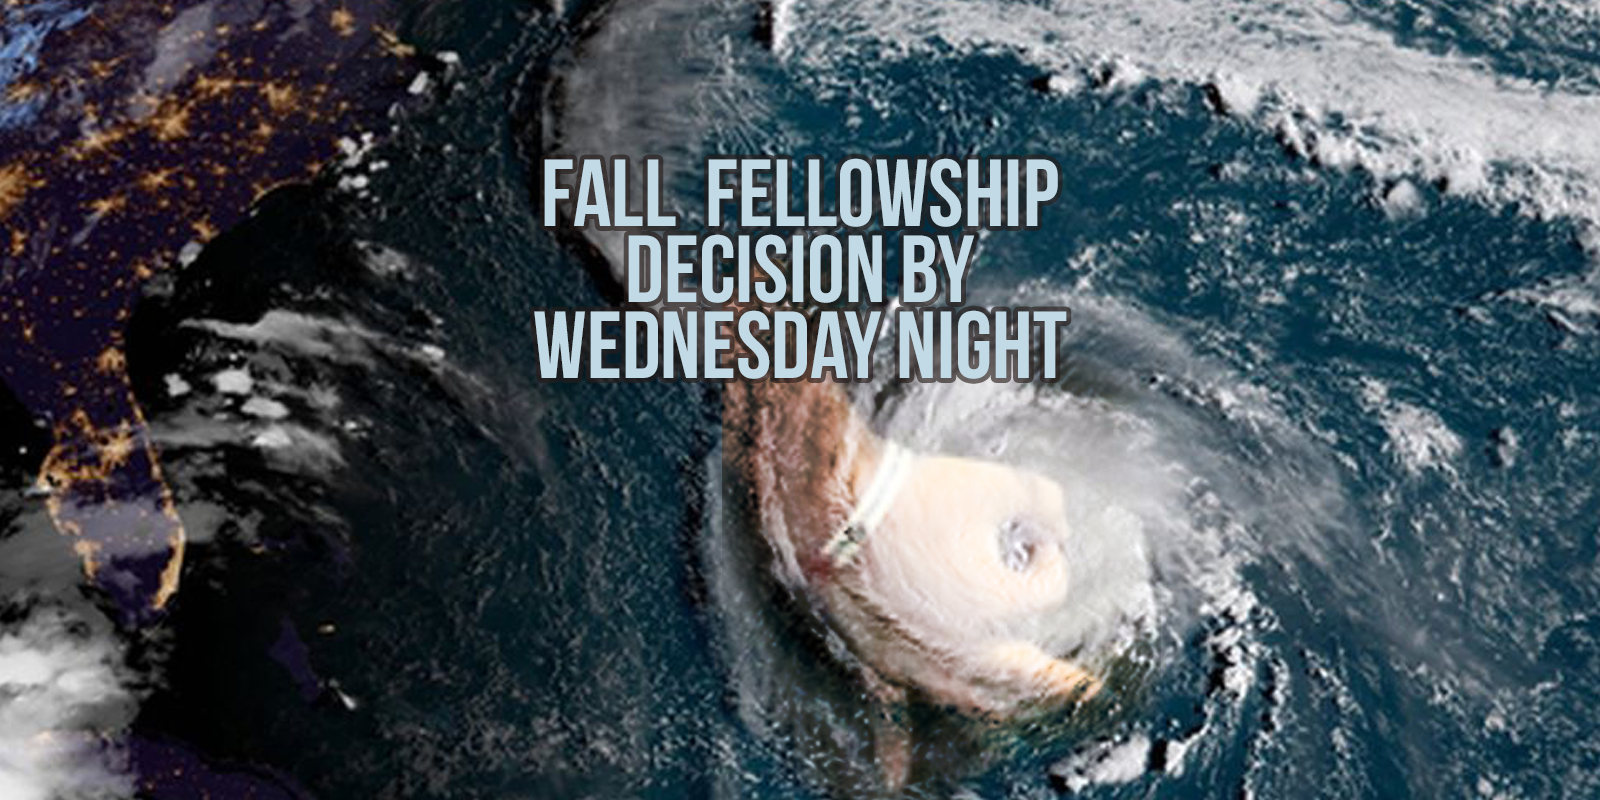 Fall Fellowship Decision Wednesday Night